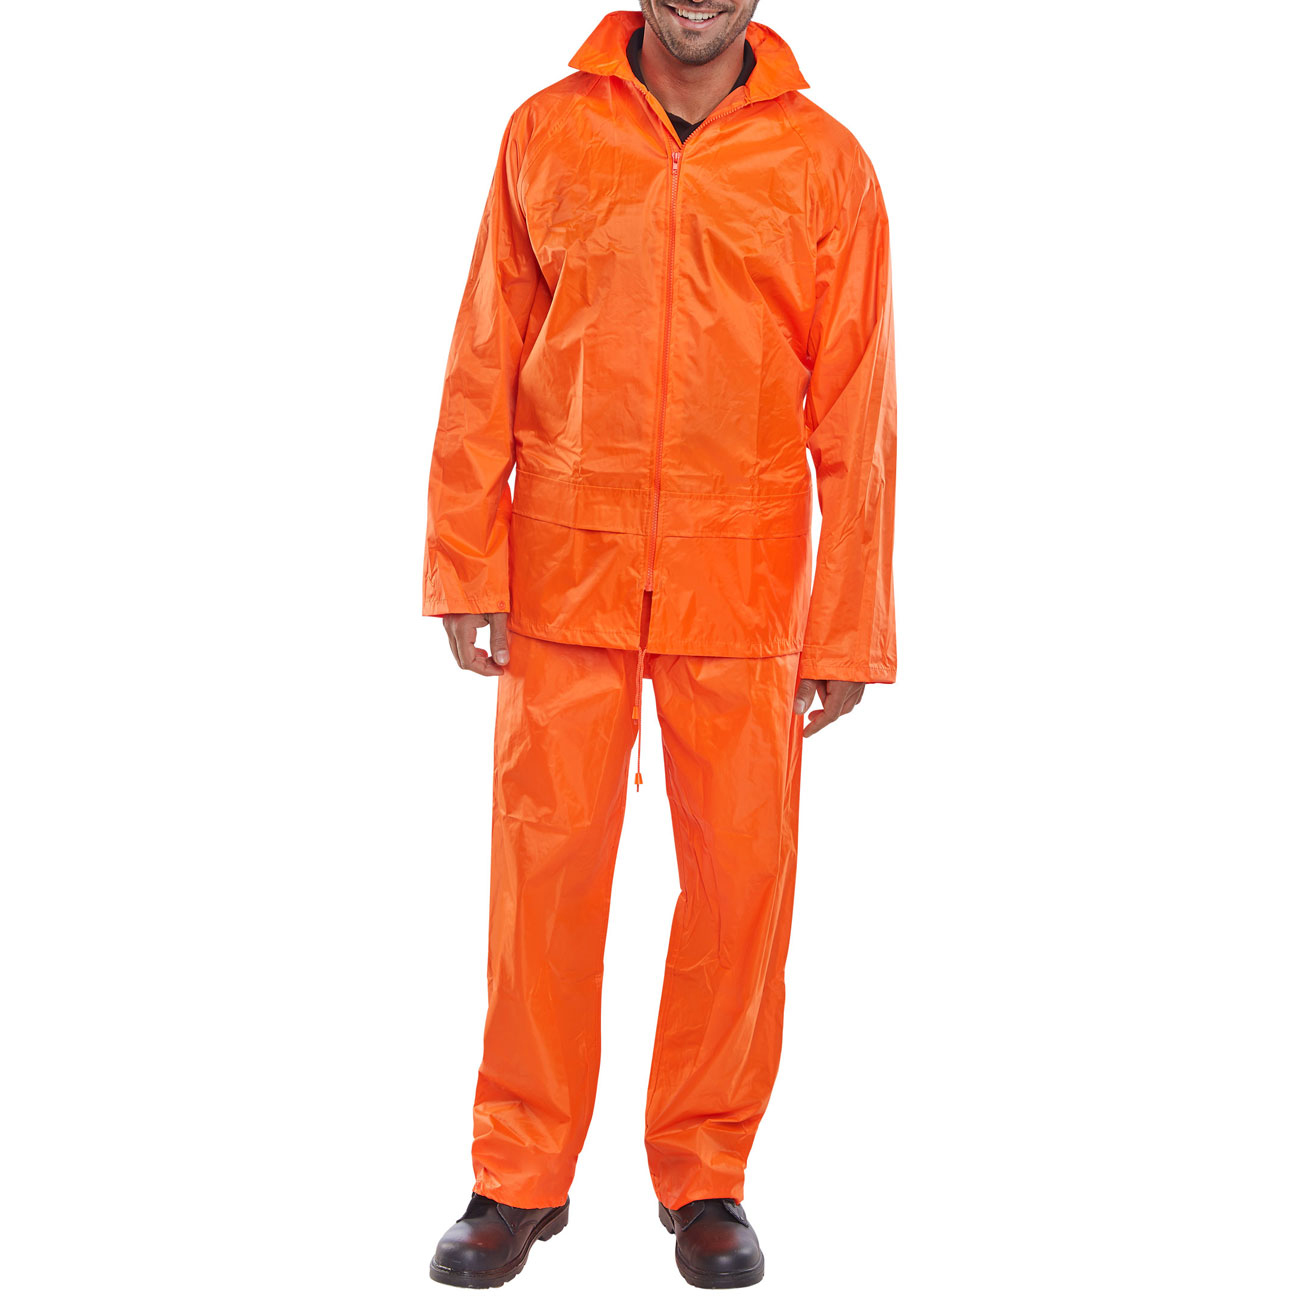 Weatherproof B-Dri Weatherproof Suit Nylon Jacket and Trouser 4XL Orange Ref NBDSOR4XL *Up to 3 Day Leadtime*